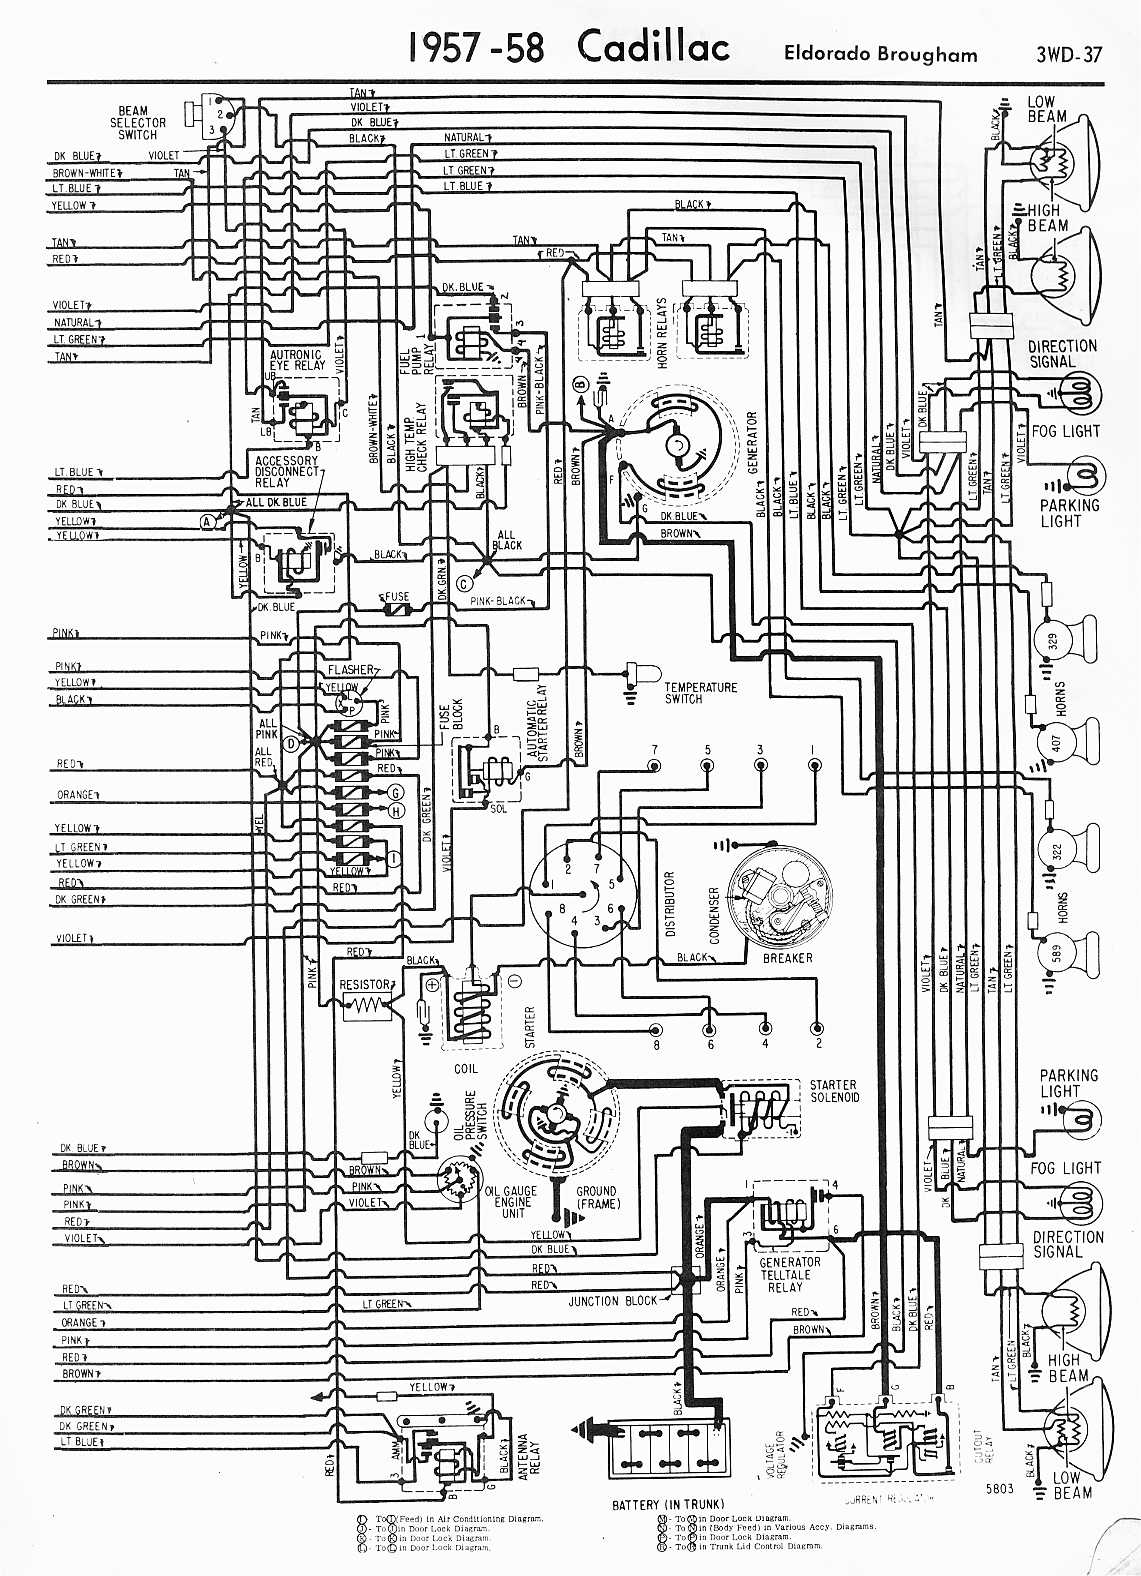 1997 cadillac deville window wiring diagram online schematics diagram rh  delvato co 01 Caddy Deville Radiator